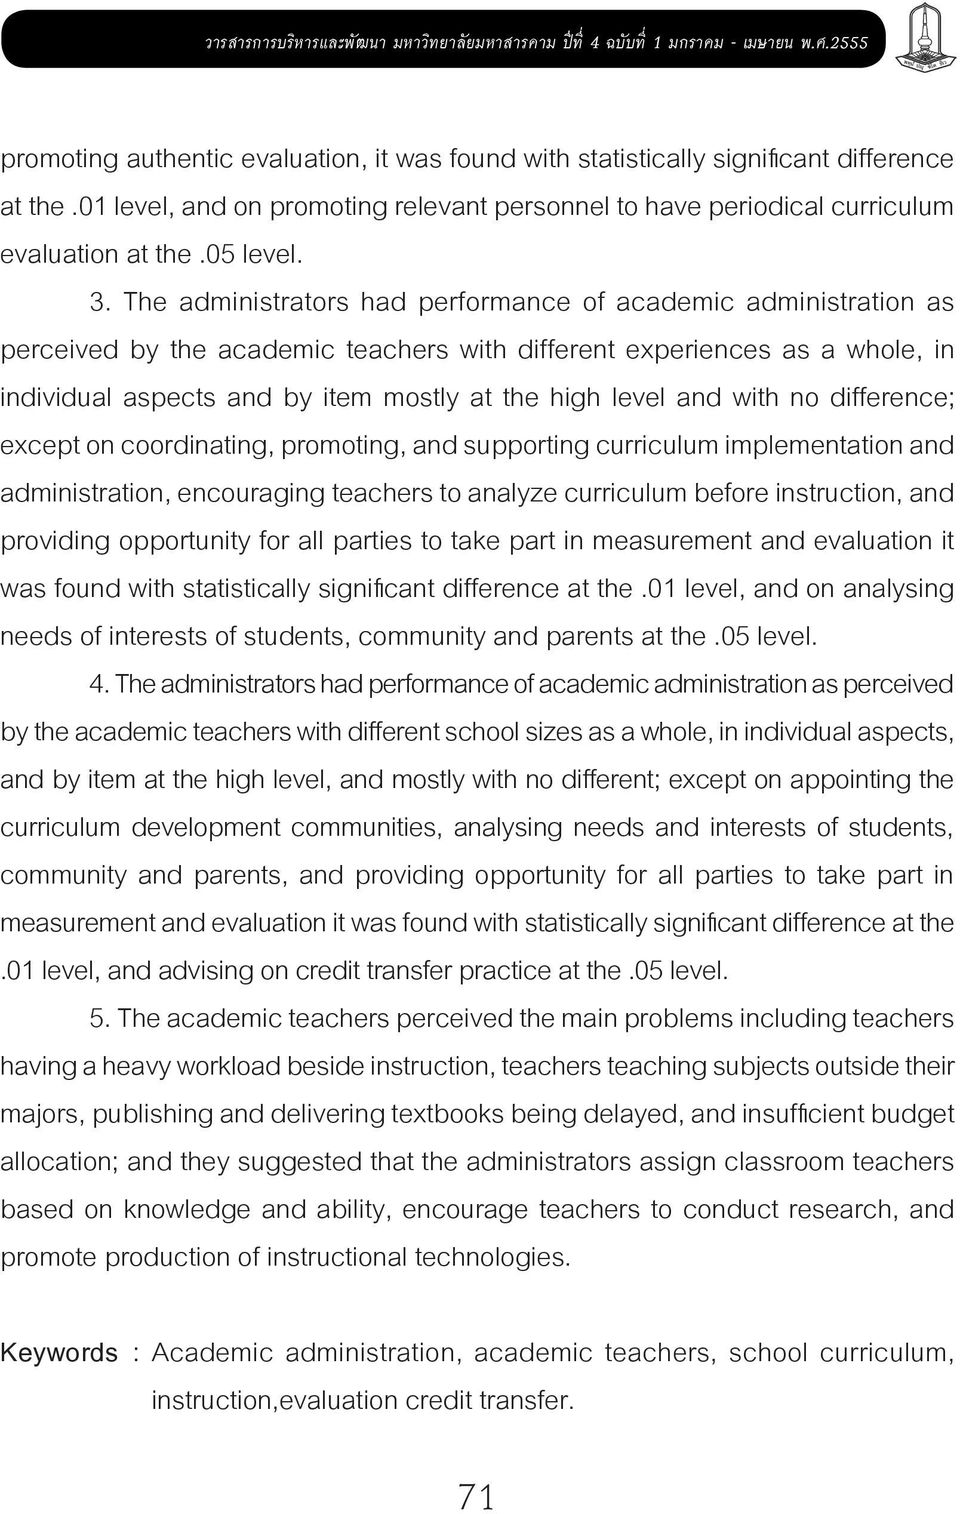 The administrators had performance of academic administration as perceived by the academic teachers with different experiences as a whole, in individual aspects and by item mostly at the high level